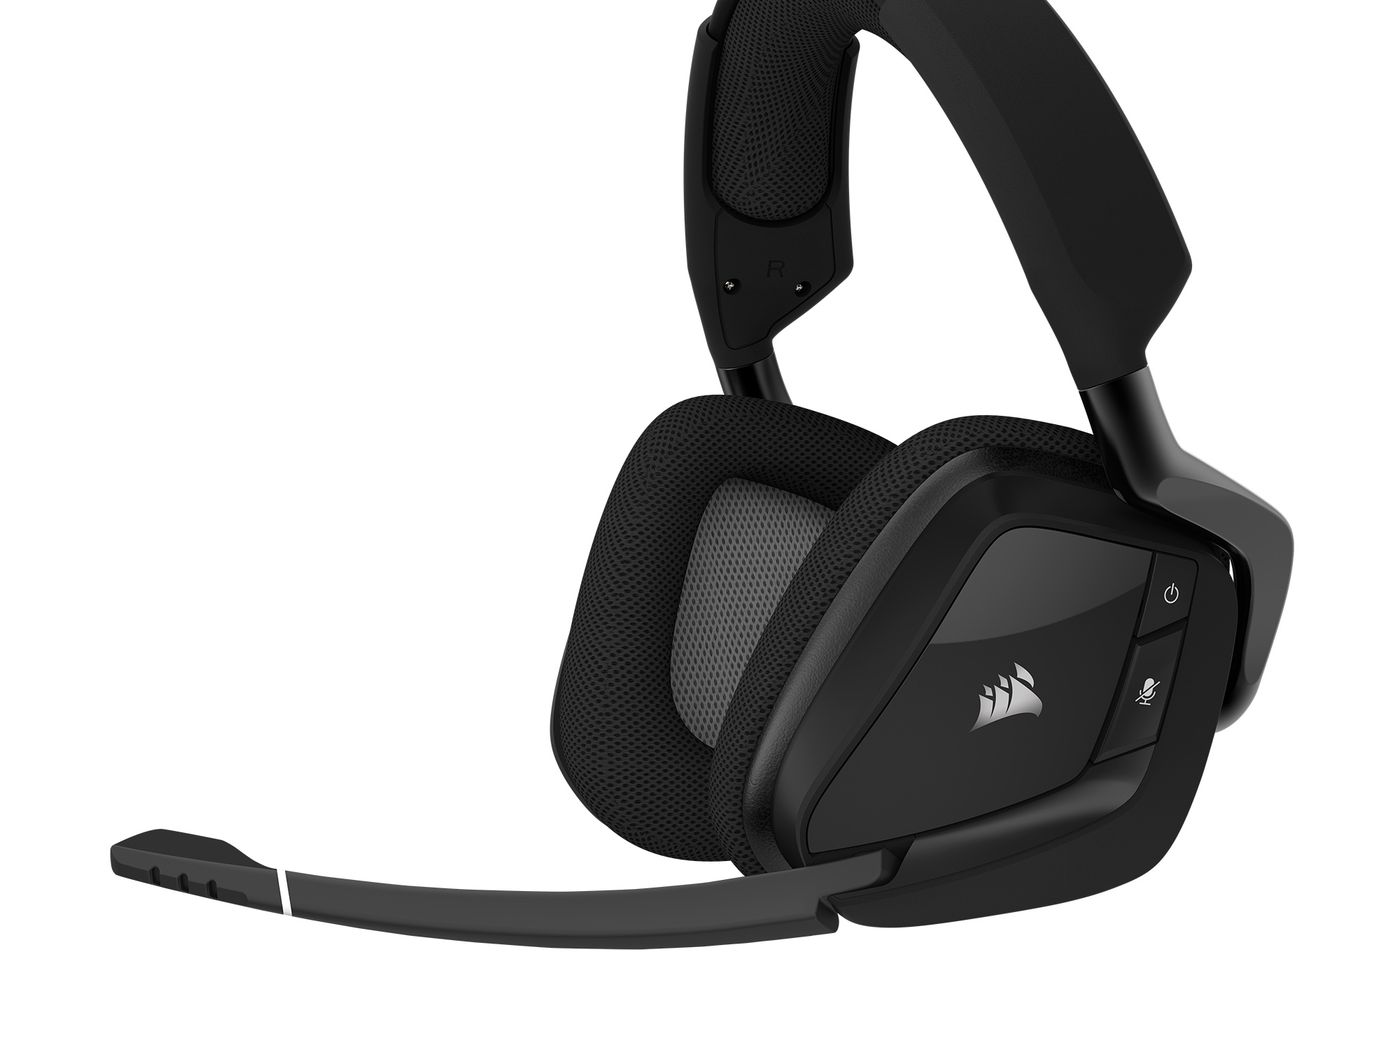 Corsair's new Void Pro gaming headsets have a way better microphone